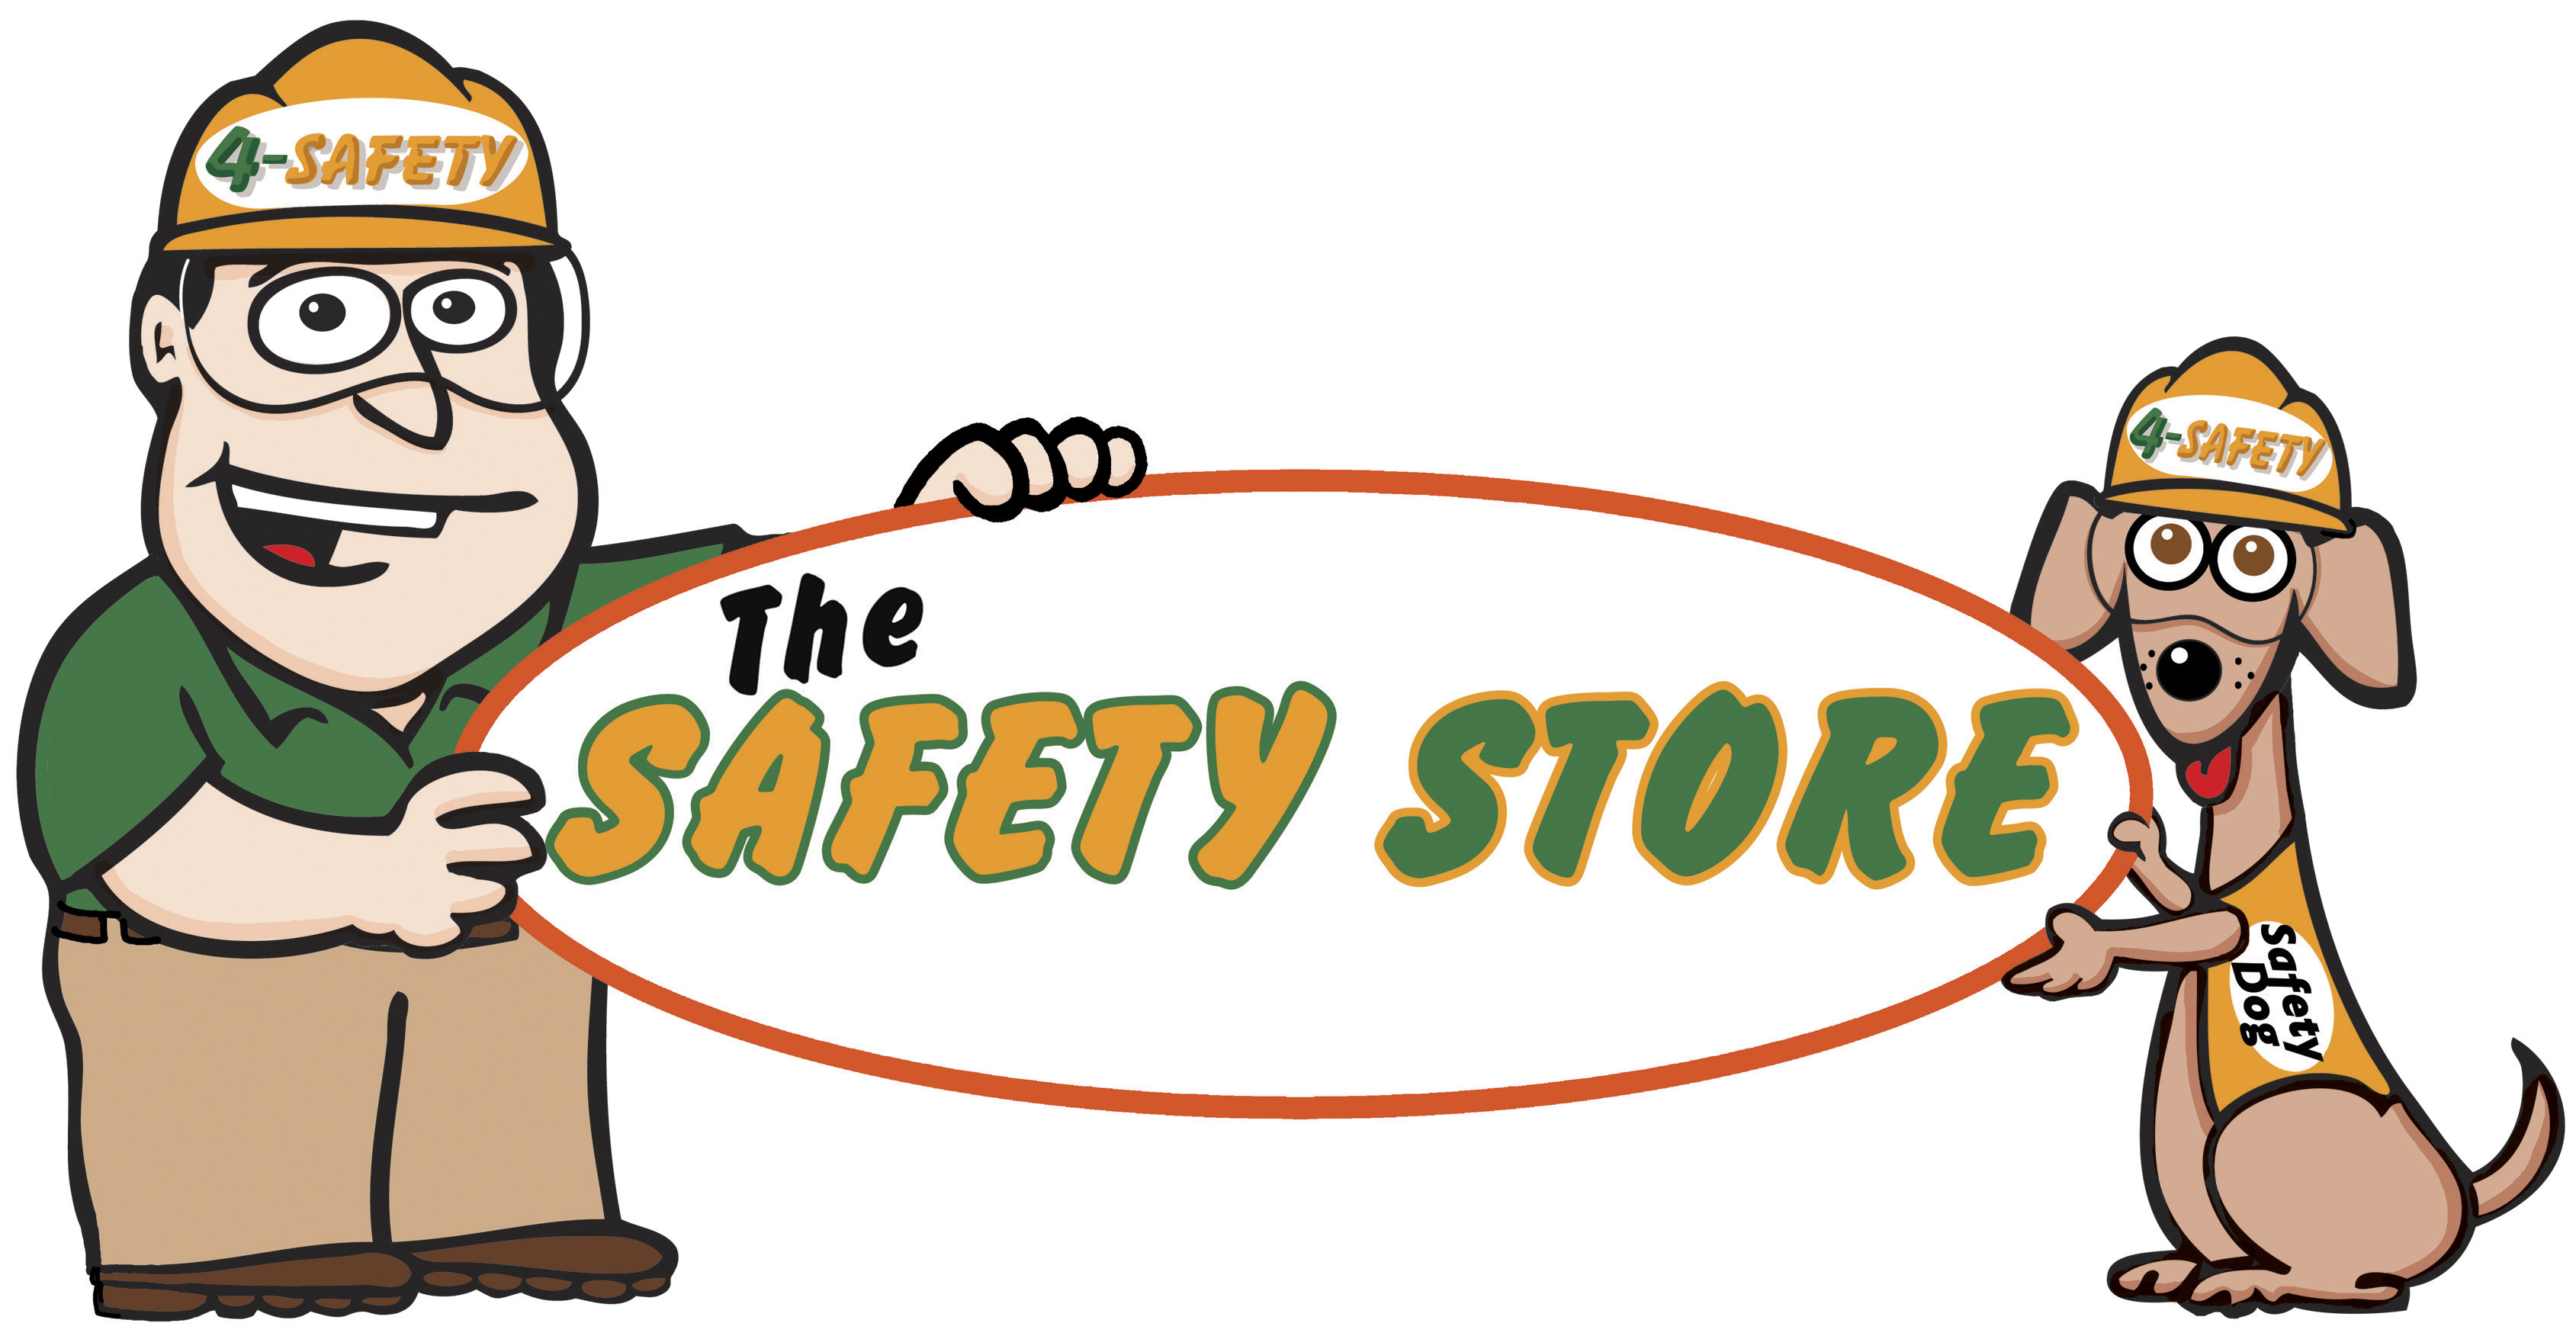 The Safety Store